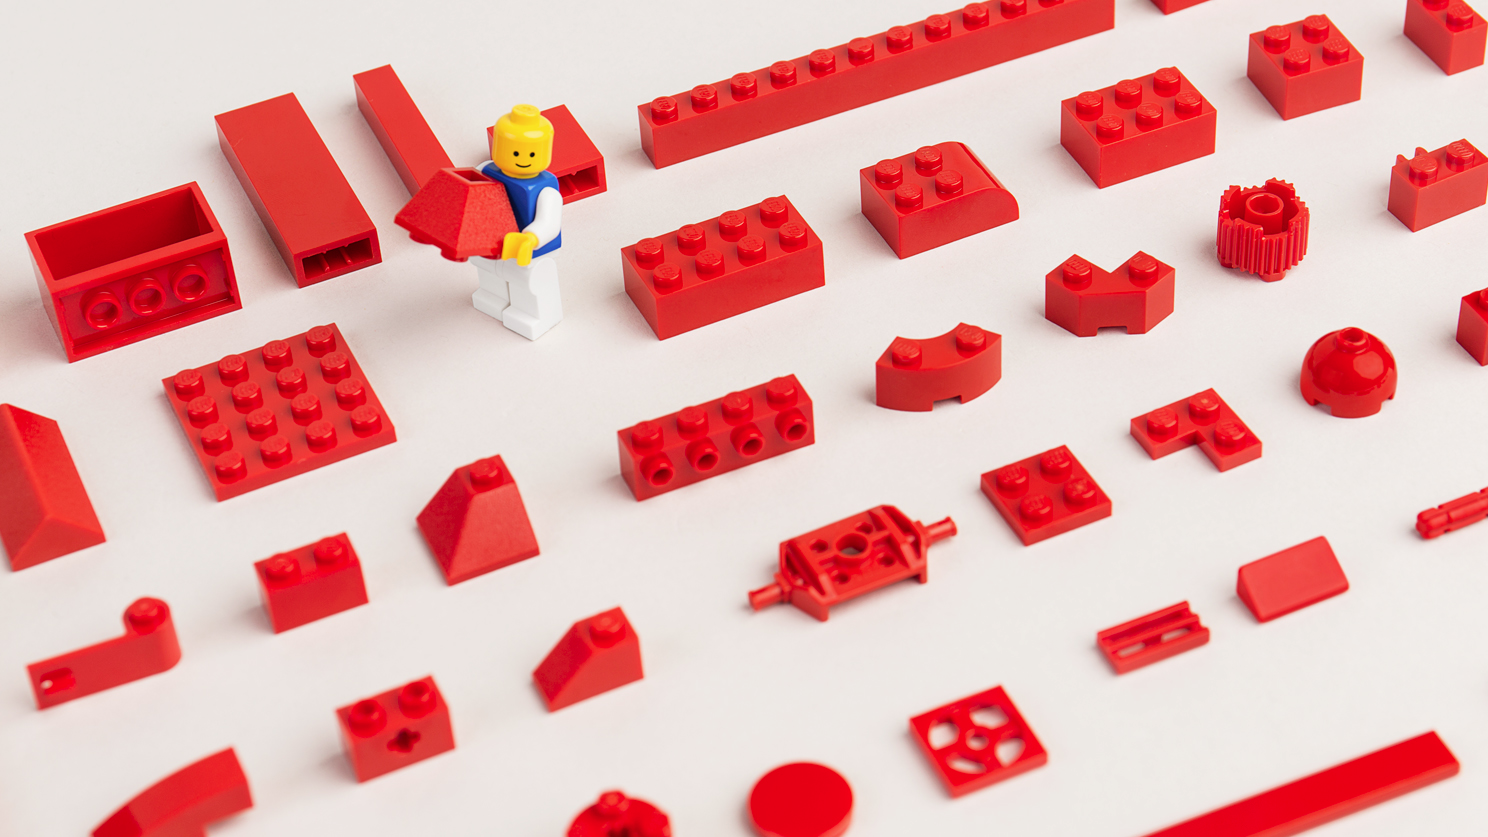 Lego - the ultimate design system